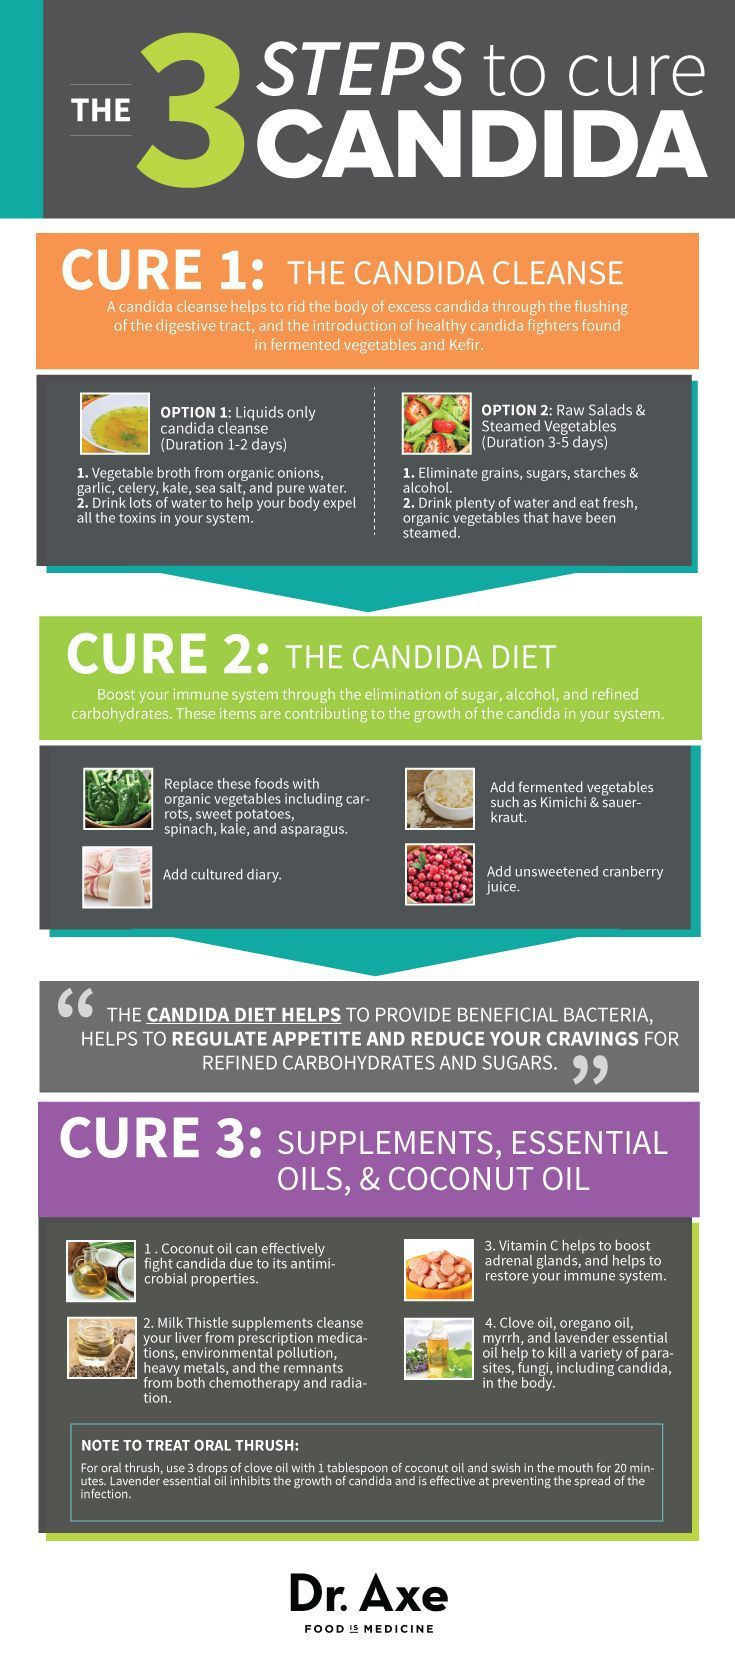 9 Candida Symptoms & 3 Steps To Cure It I love Dr. Axe, but still not sure on candida diet. Research in progress!